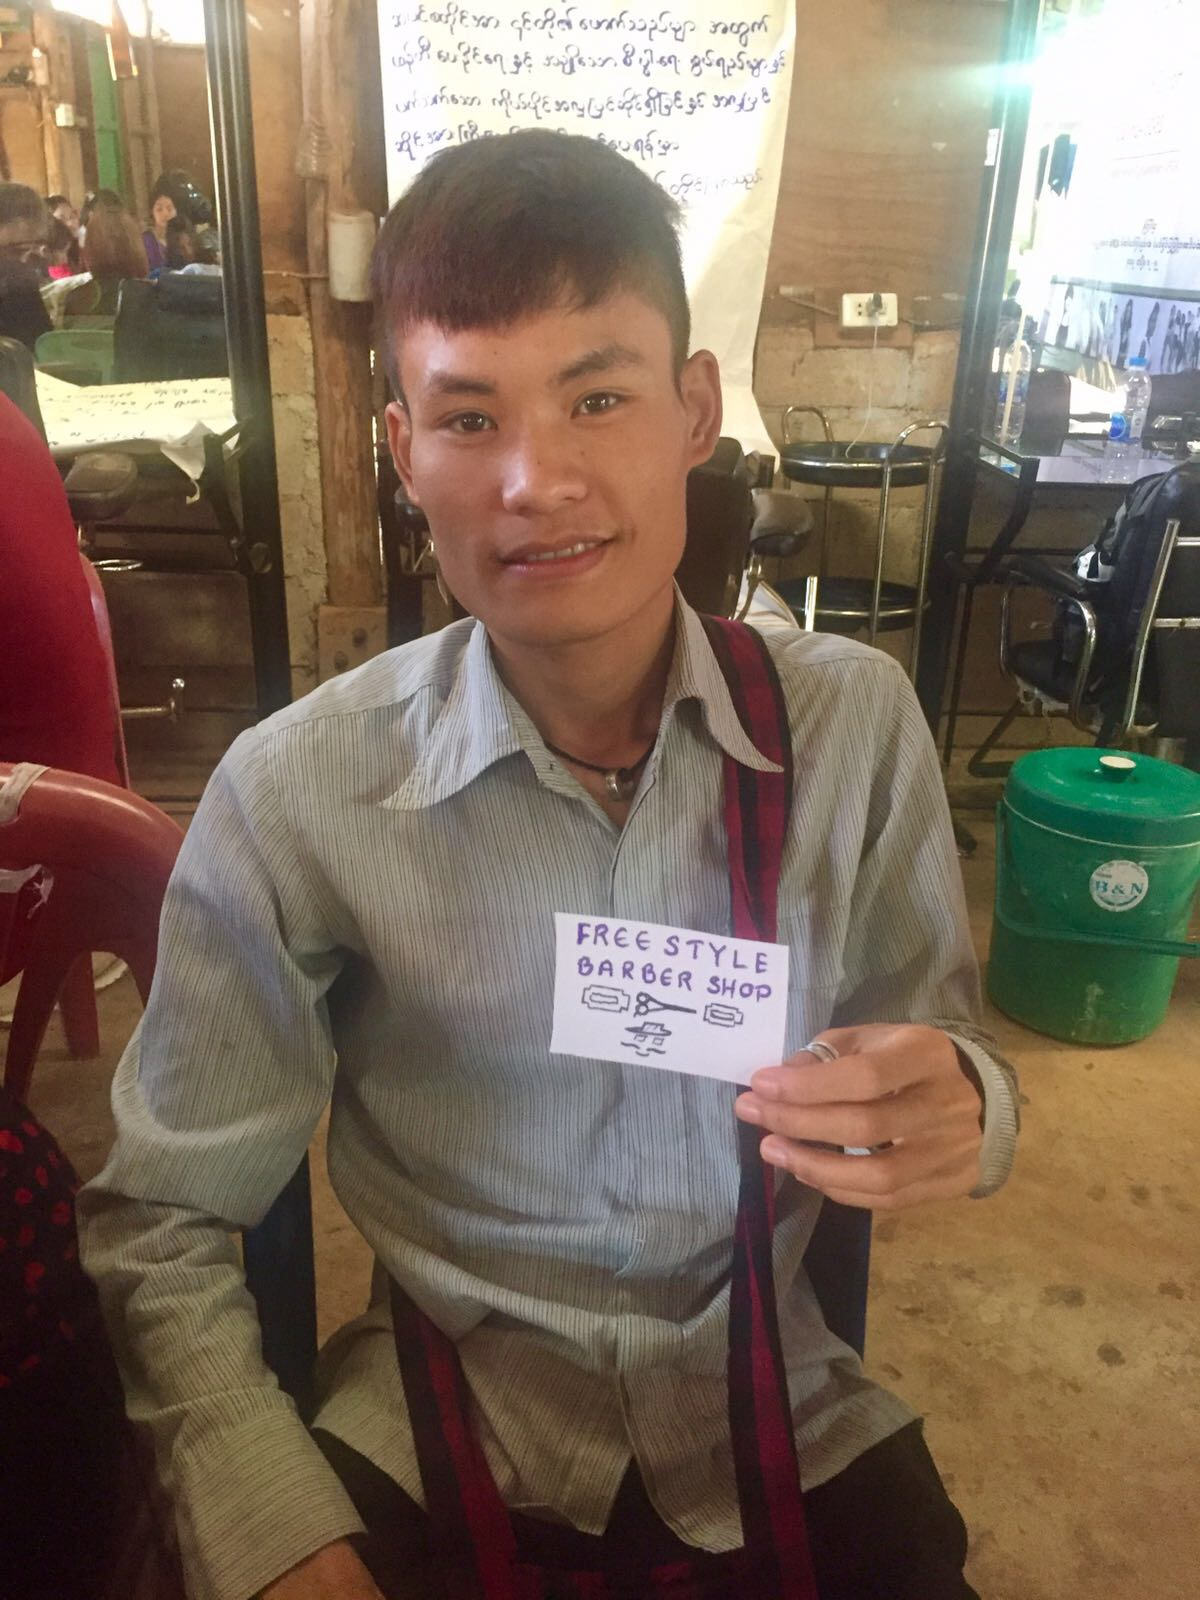 Freestyle Barber Shop owner with his new business card idea.